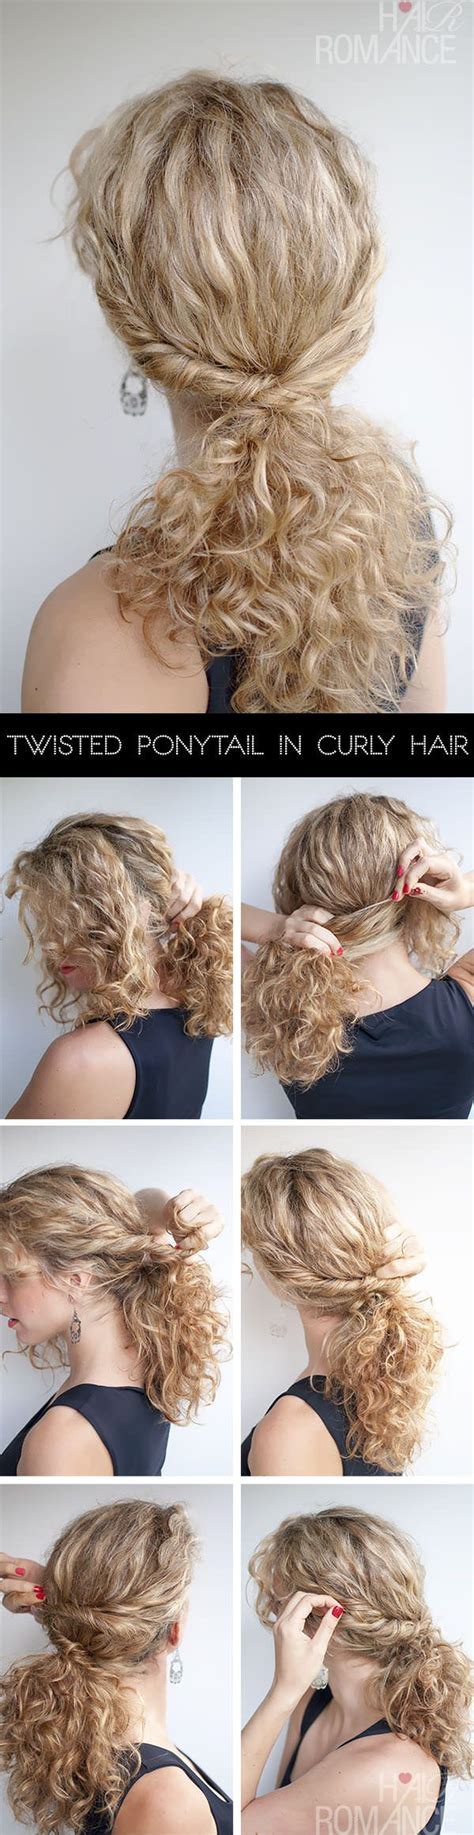 holiday hairstyles curly hair holiday hairstyles for curly hair gals her cus